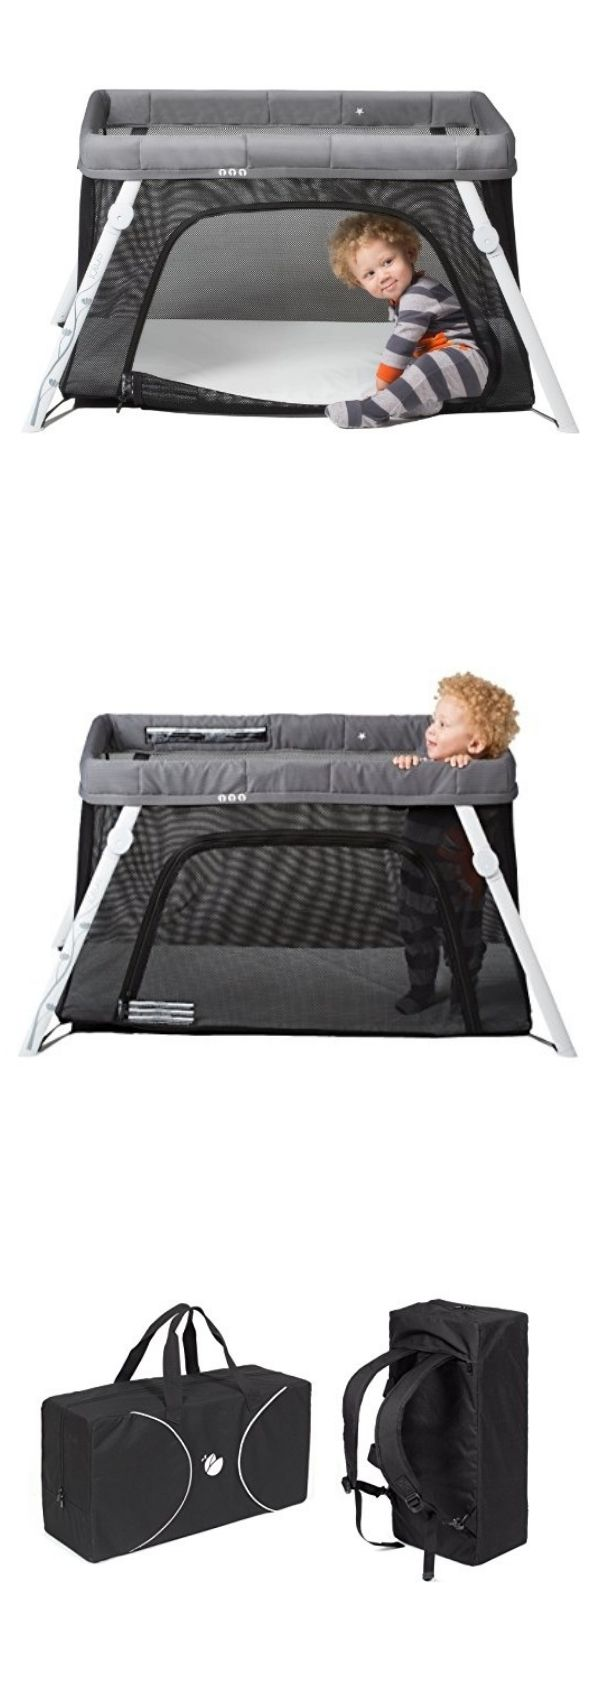 On our list of the top 6 portable cribs is the Lotus Travel Crib. Why We Love It: The Lotus Travel Crib and Portable Baby Playard is one of a kind. The Guava Family is the only company that makes cribs that pack into backpacks. The backpack is lightweight and super convenient for busy parents that are on the move. Set up time at 15 seconds, the Lotus Travel Crib can be used for... Continue Reading